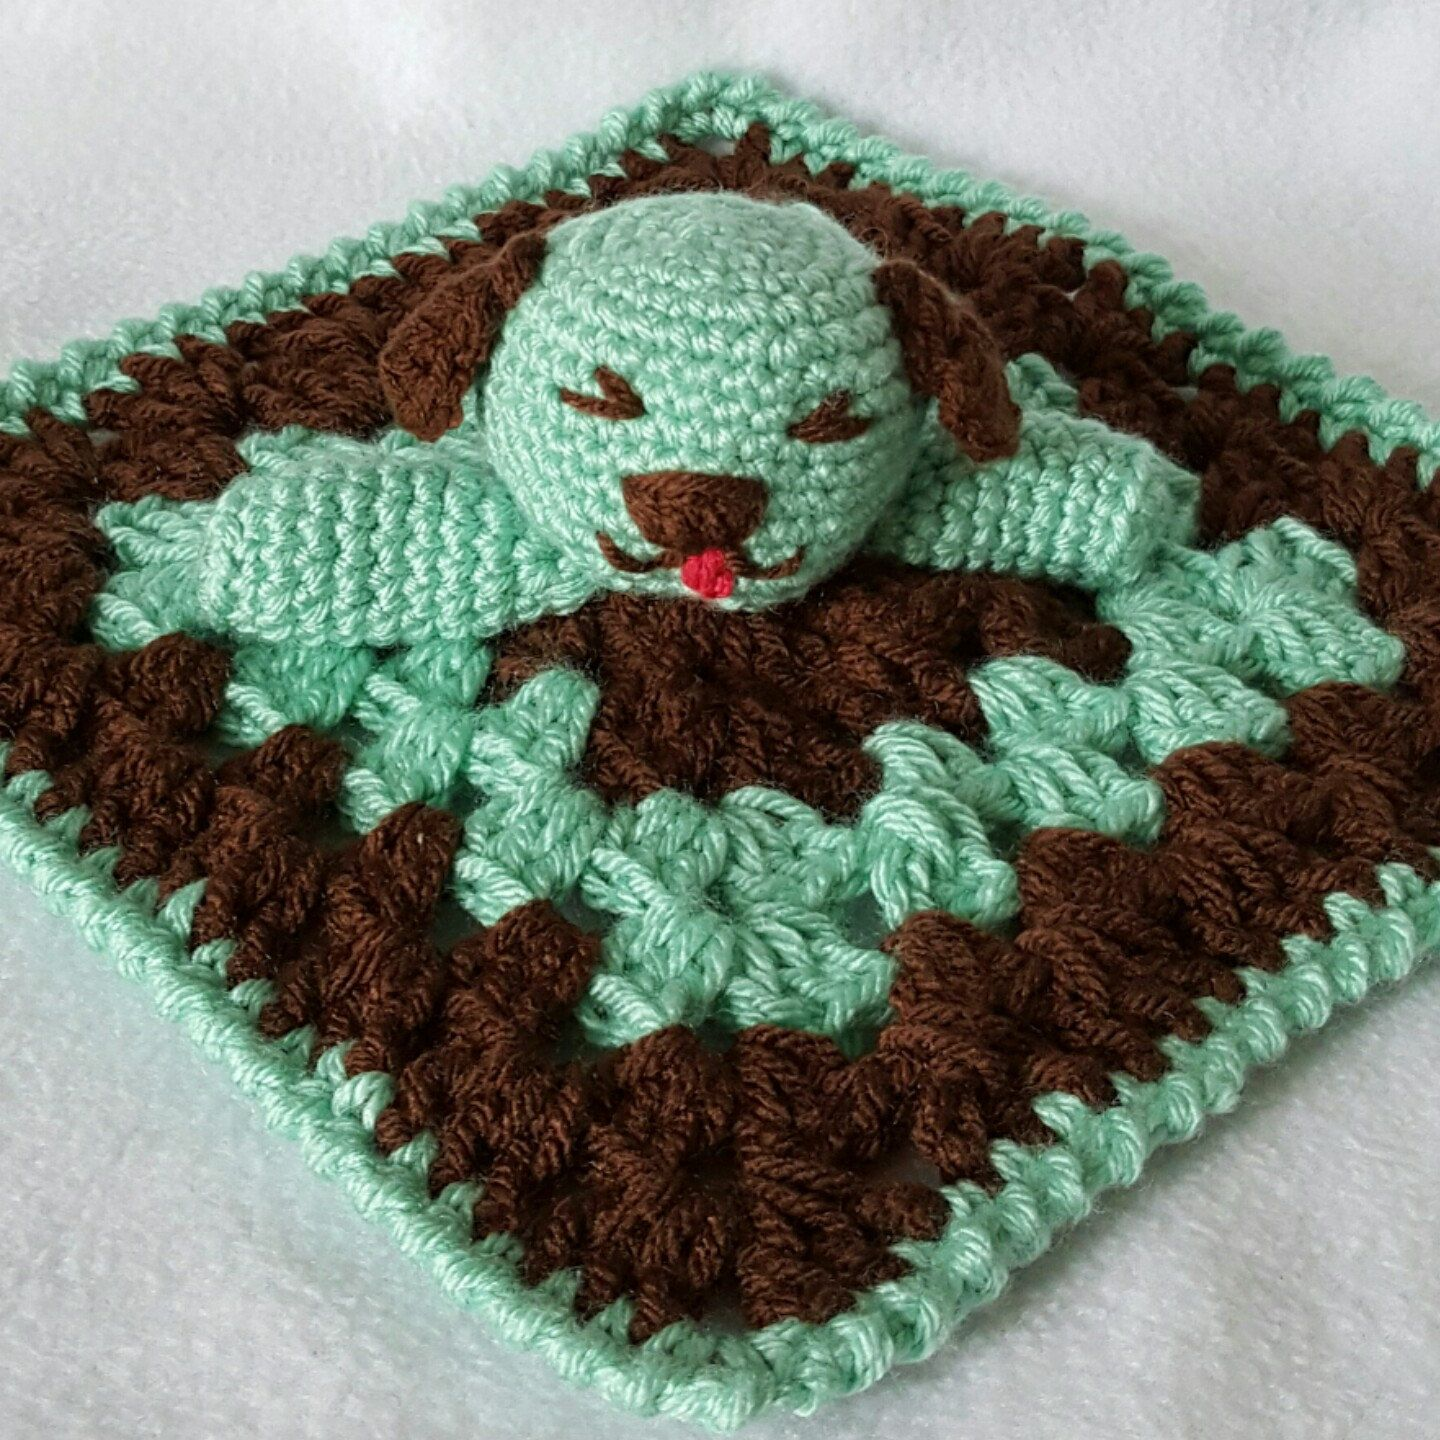 Cute baby blanket for snuggling.